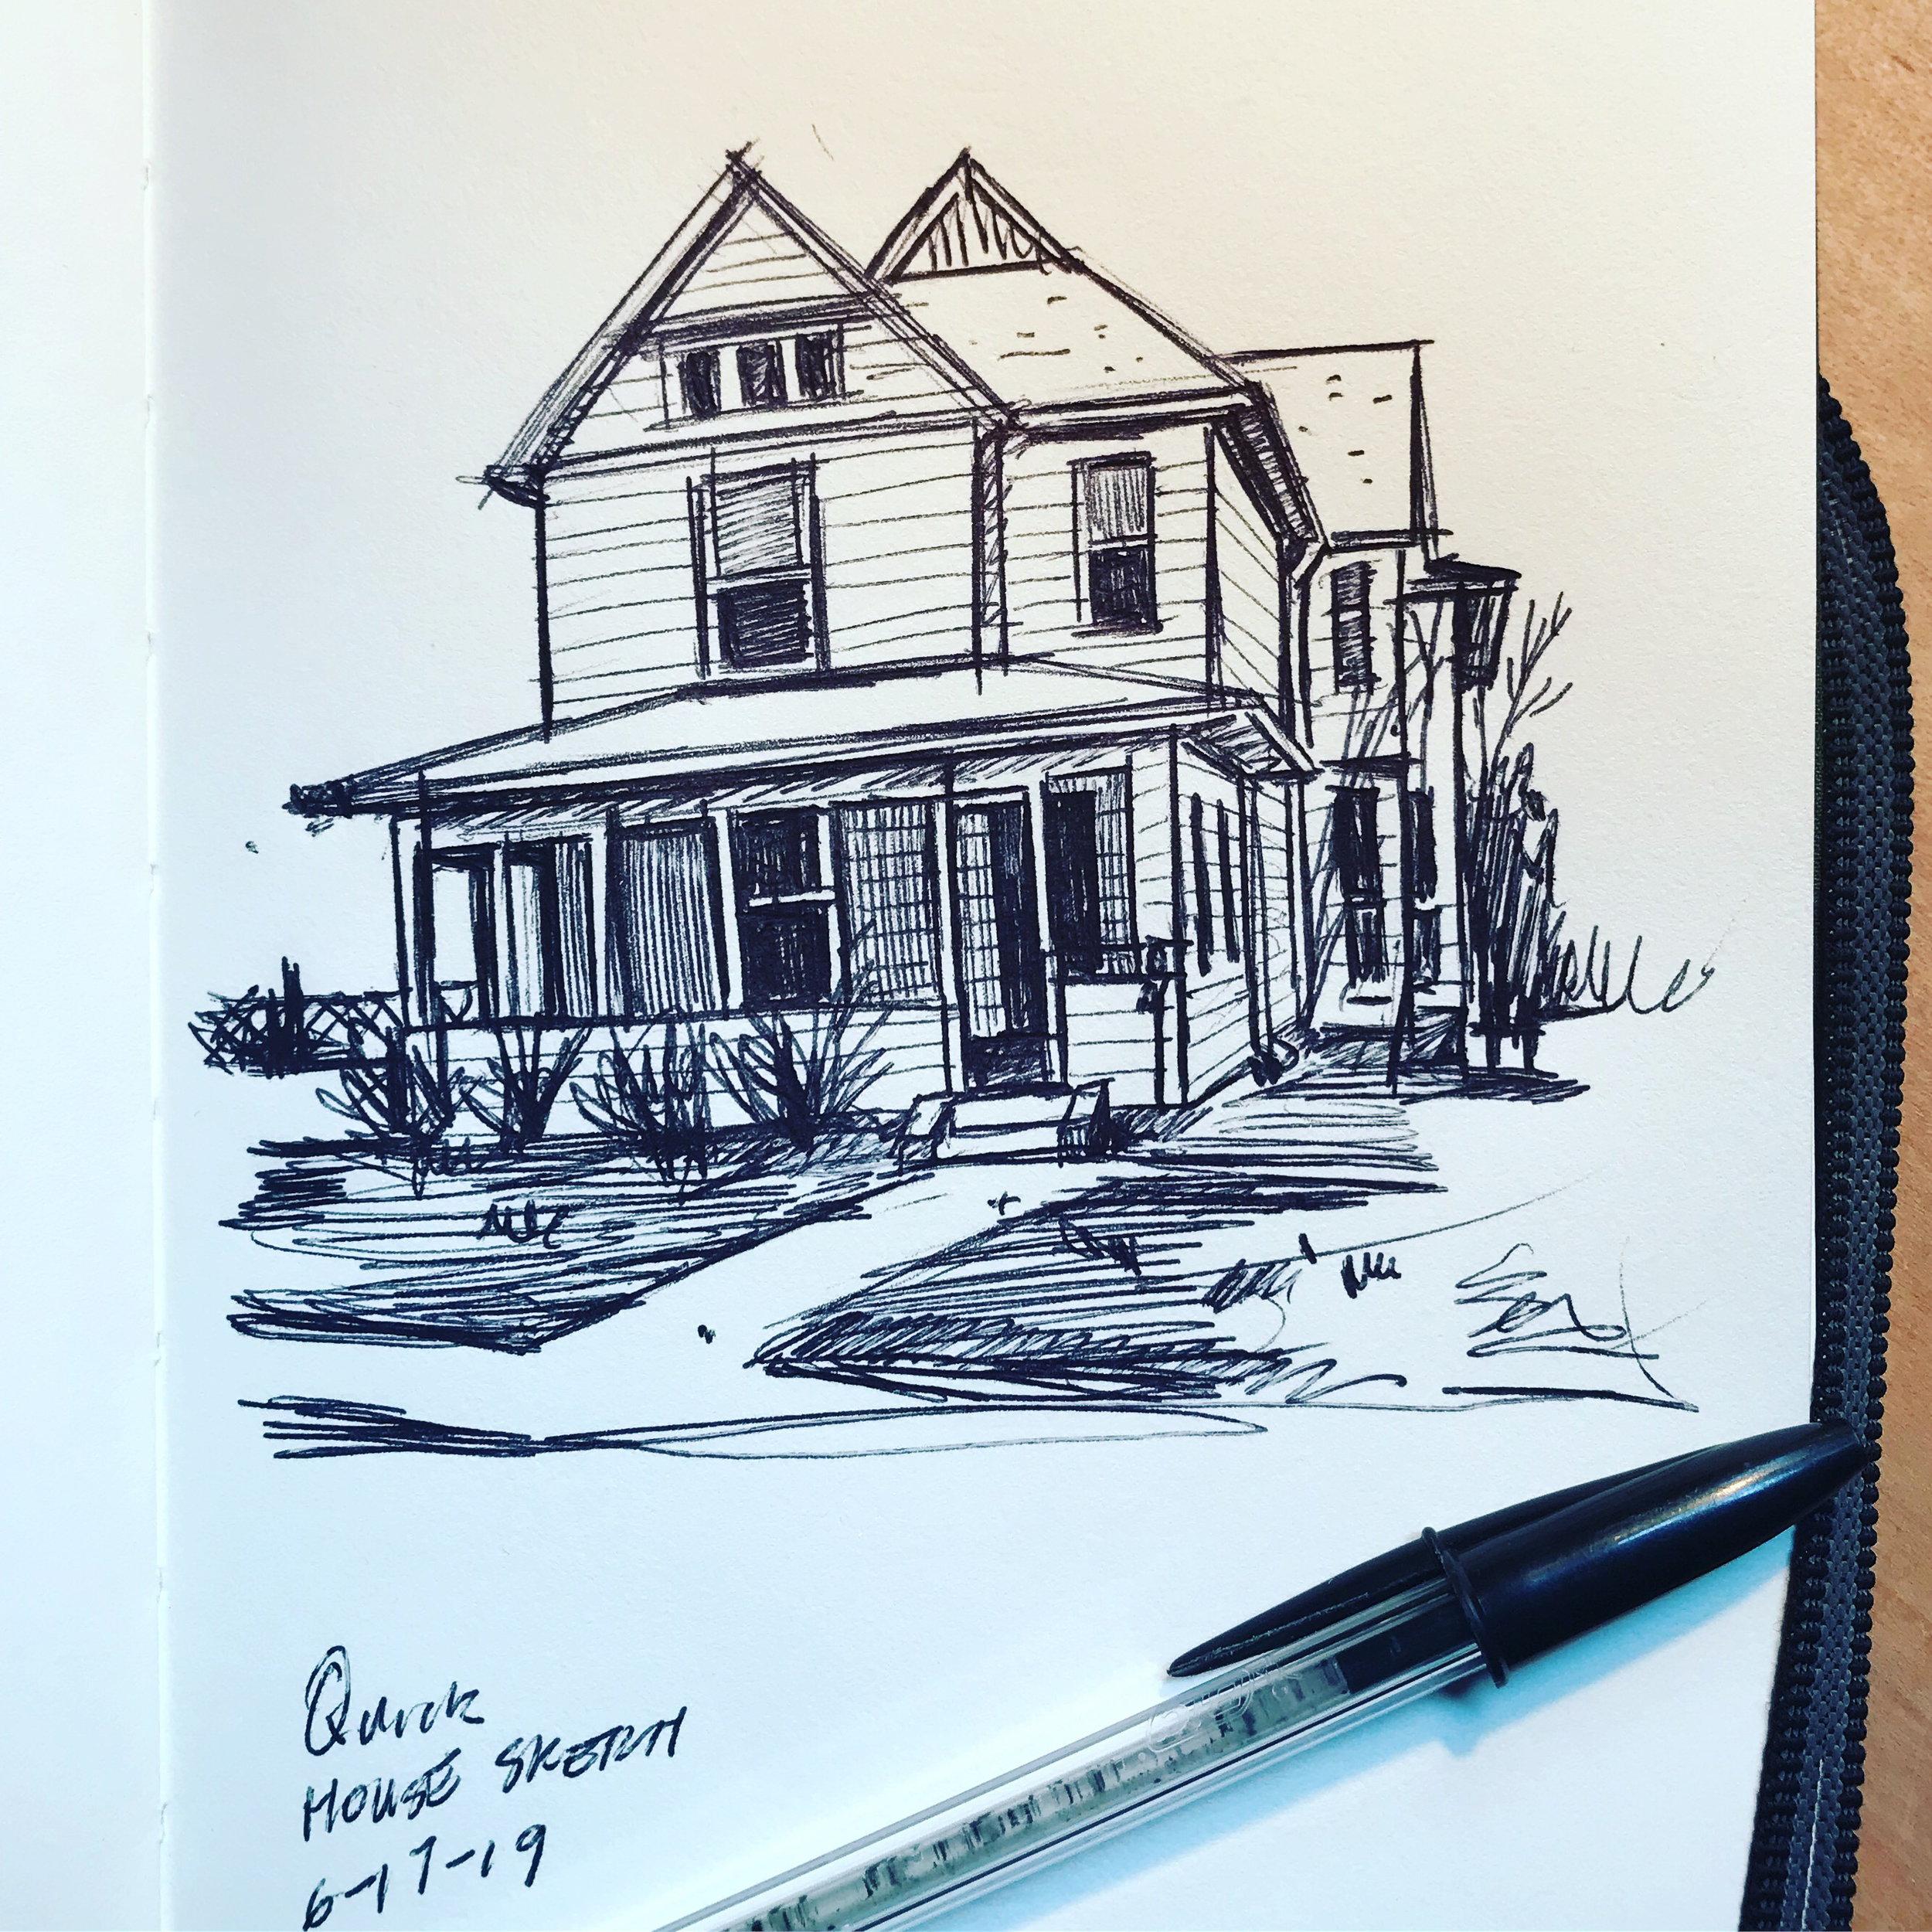 Quick_House_Sketch_6_17_19.jpg